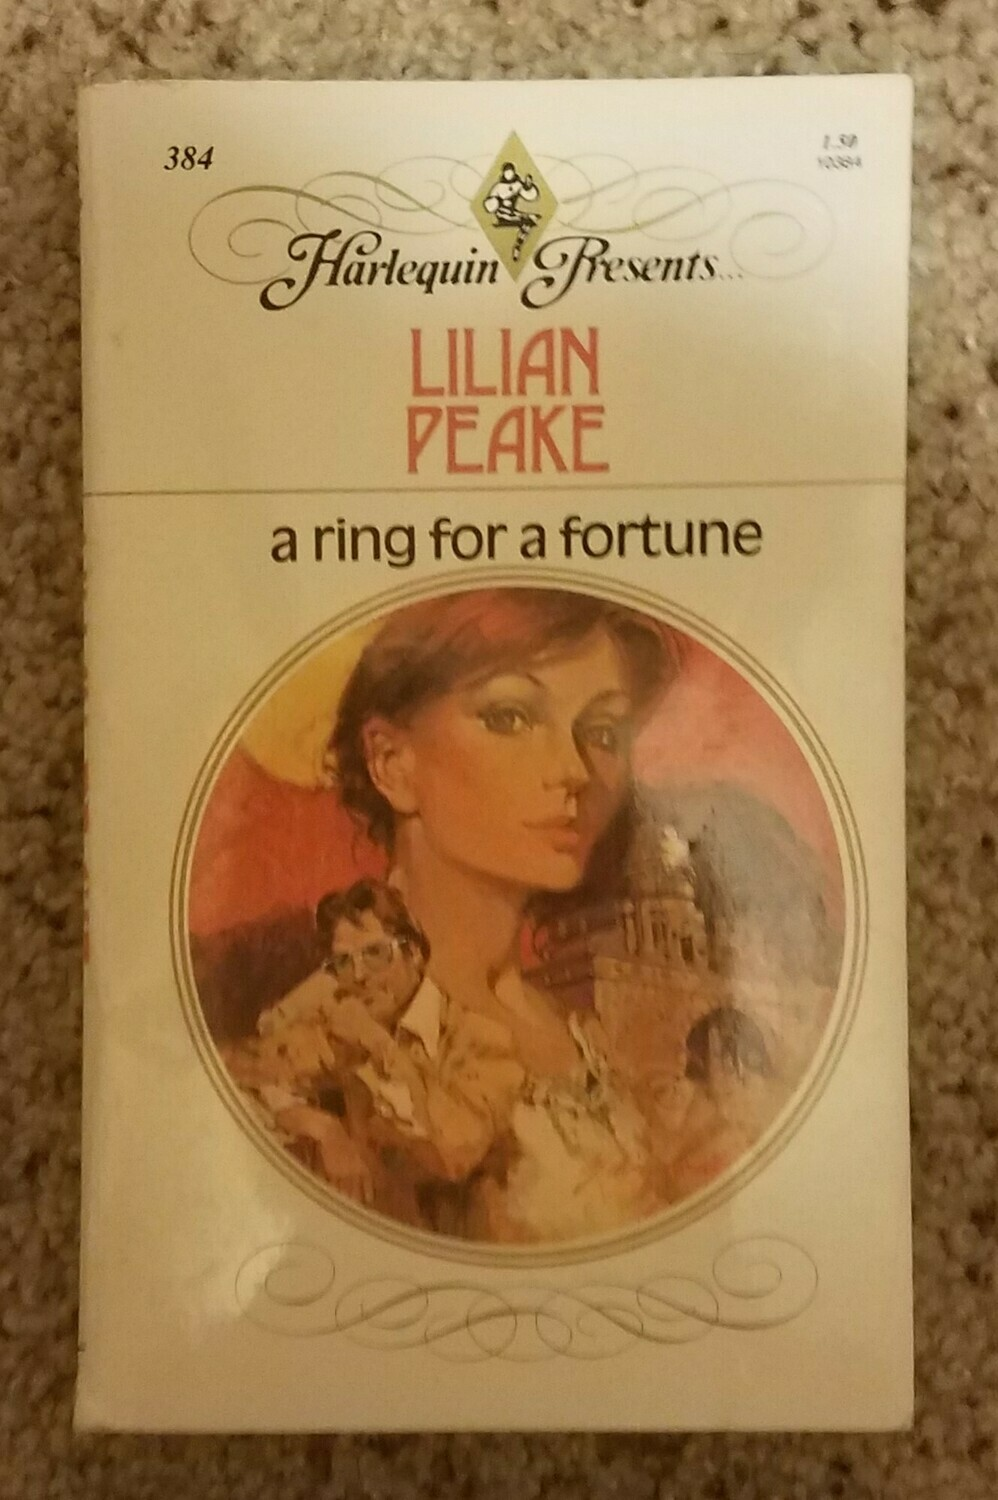 A Ring for a Fortune by Lilian Peake